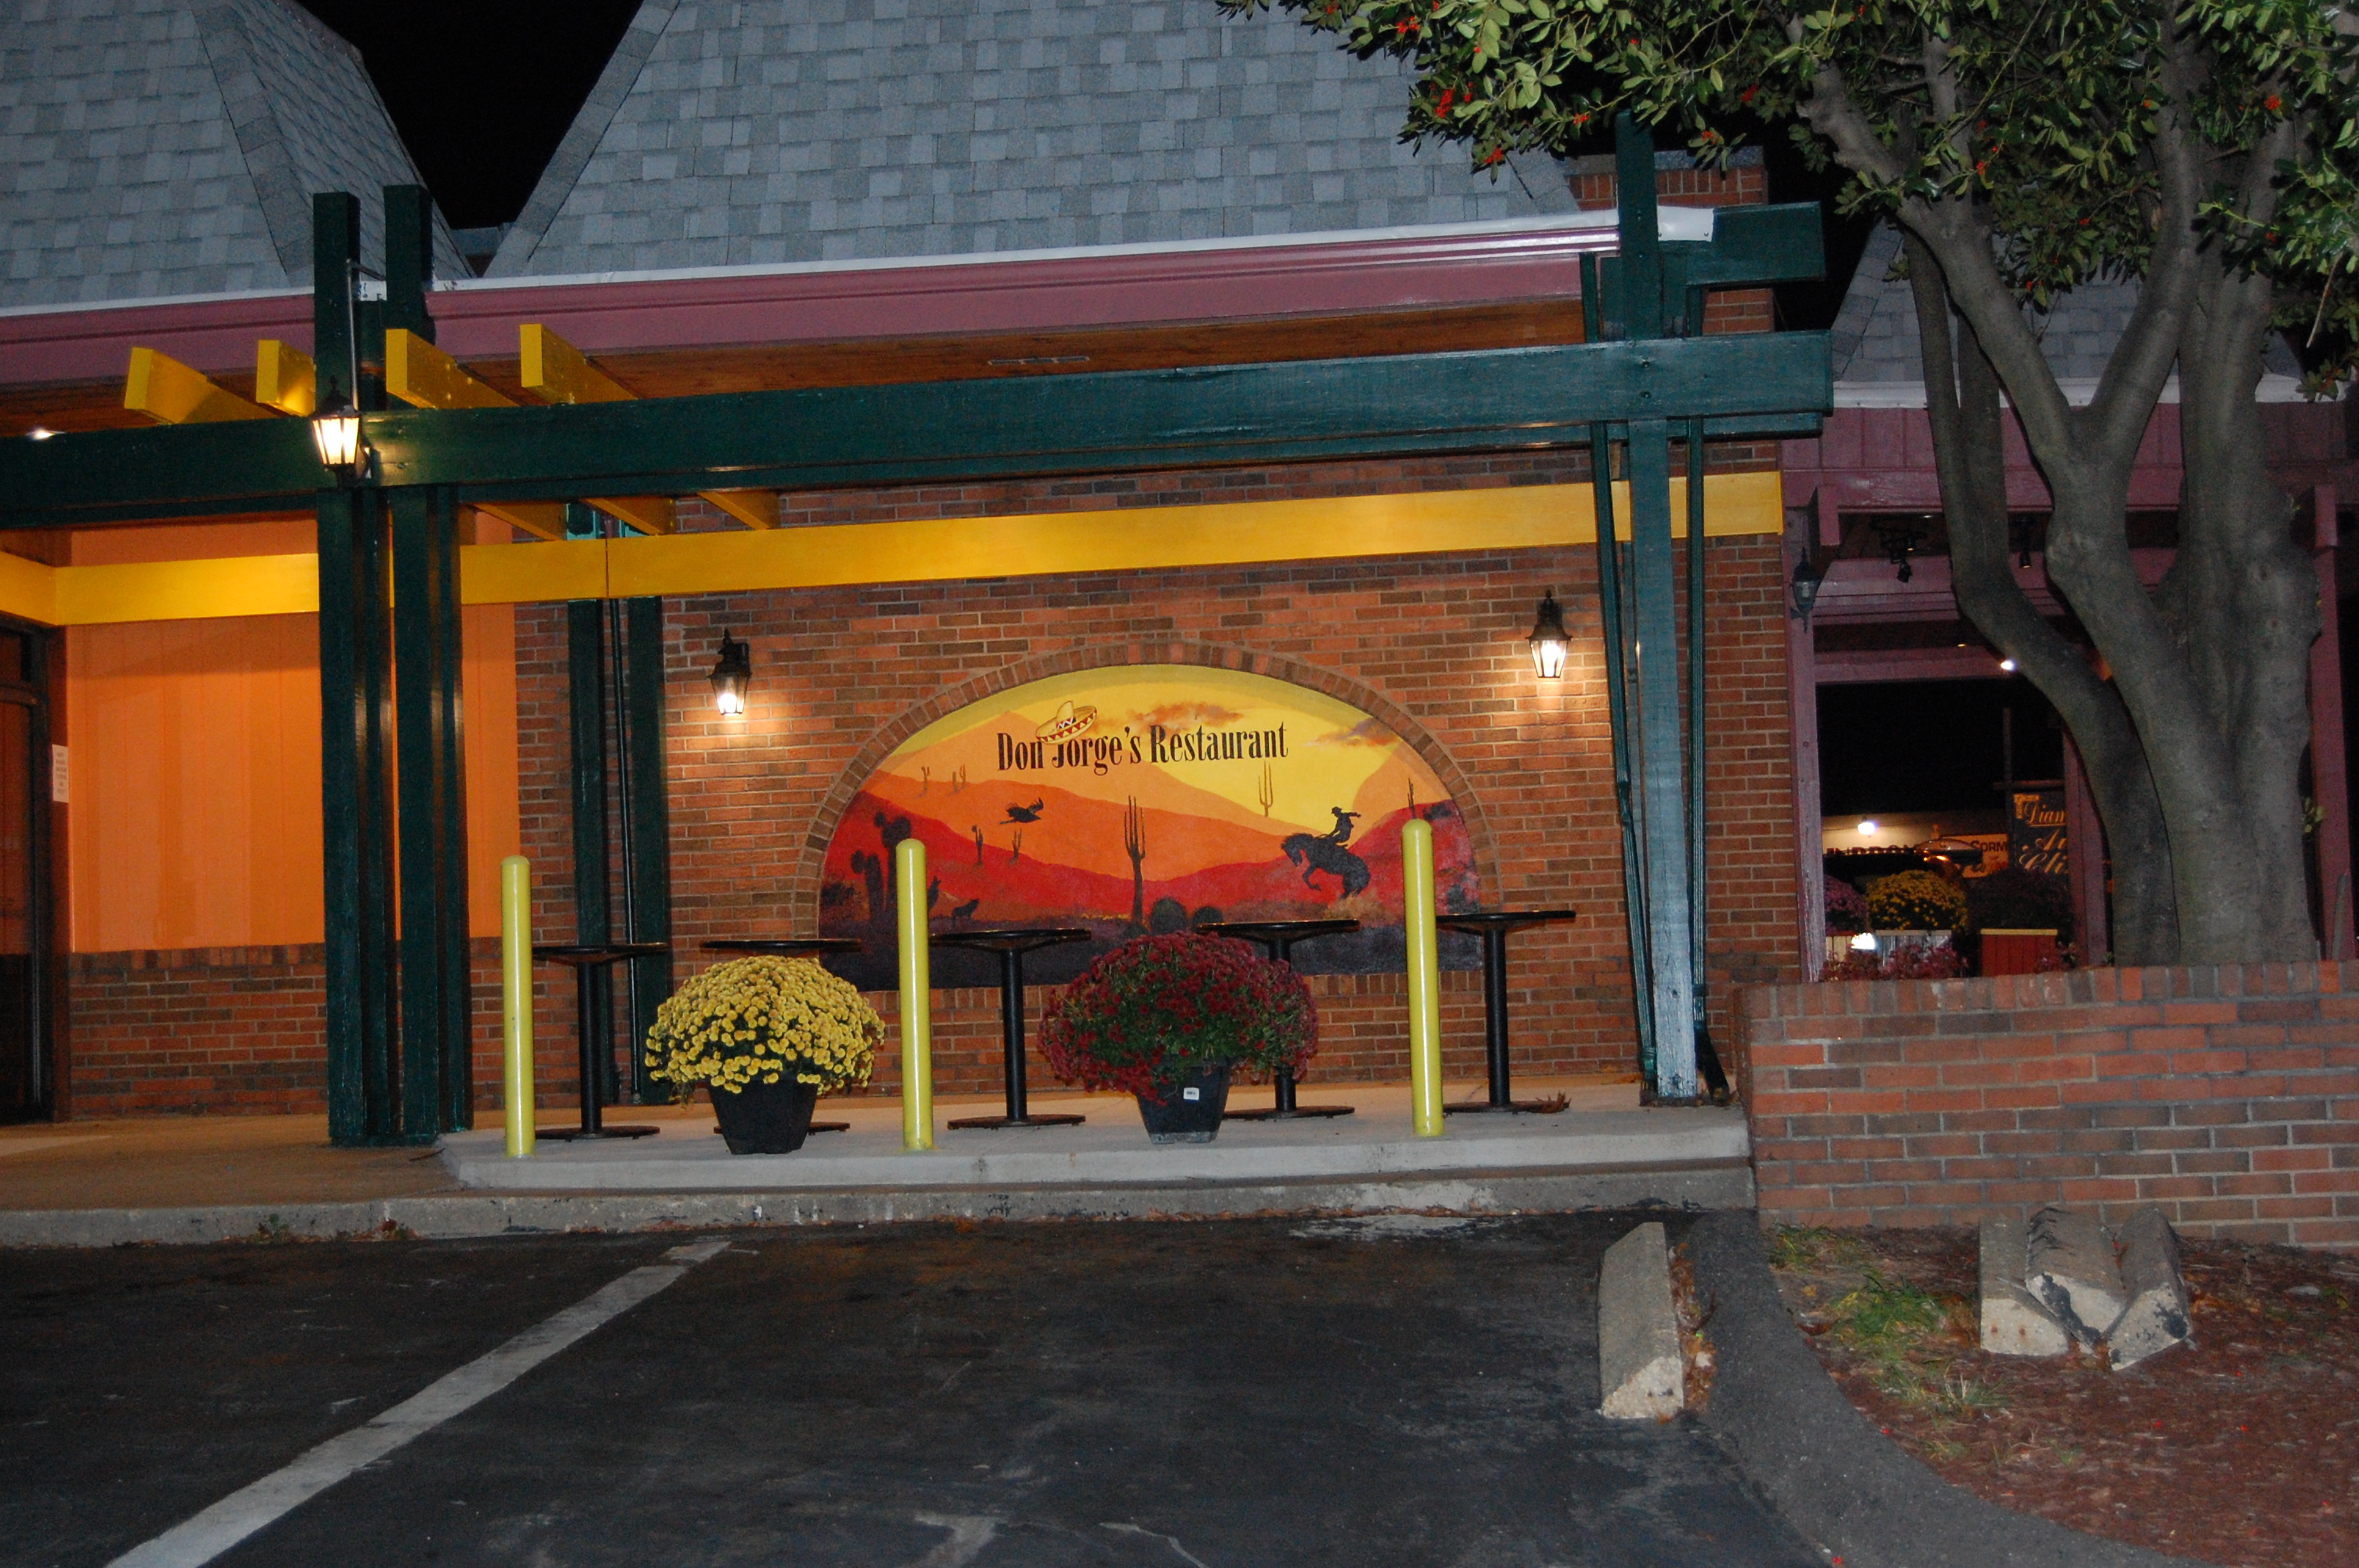 Don Jorge's Restaurant Outdoor Mural - Gaithersburg Md